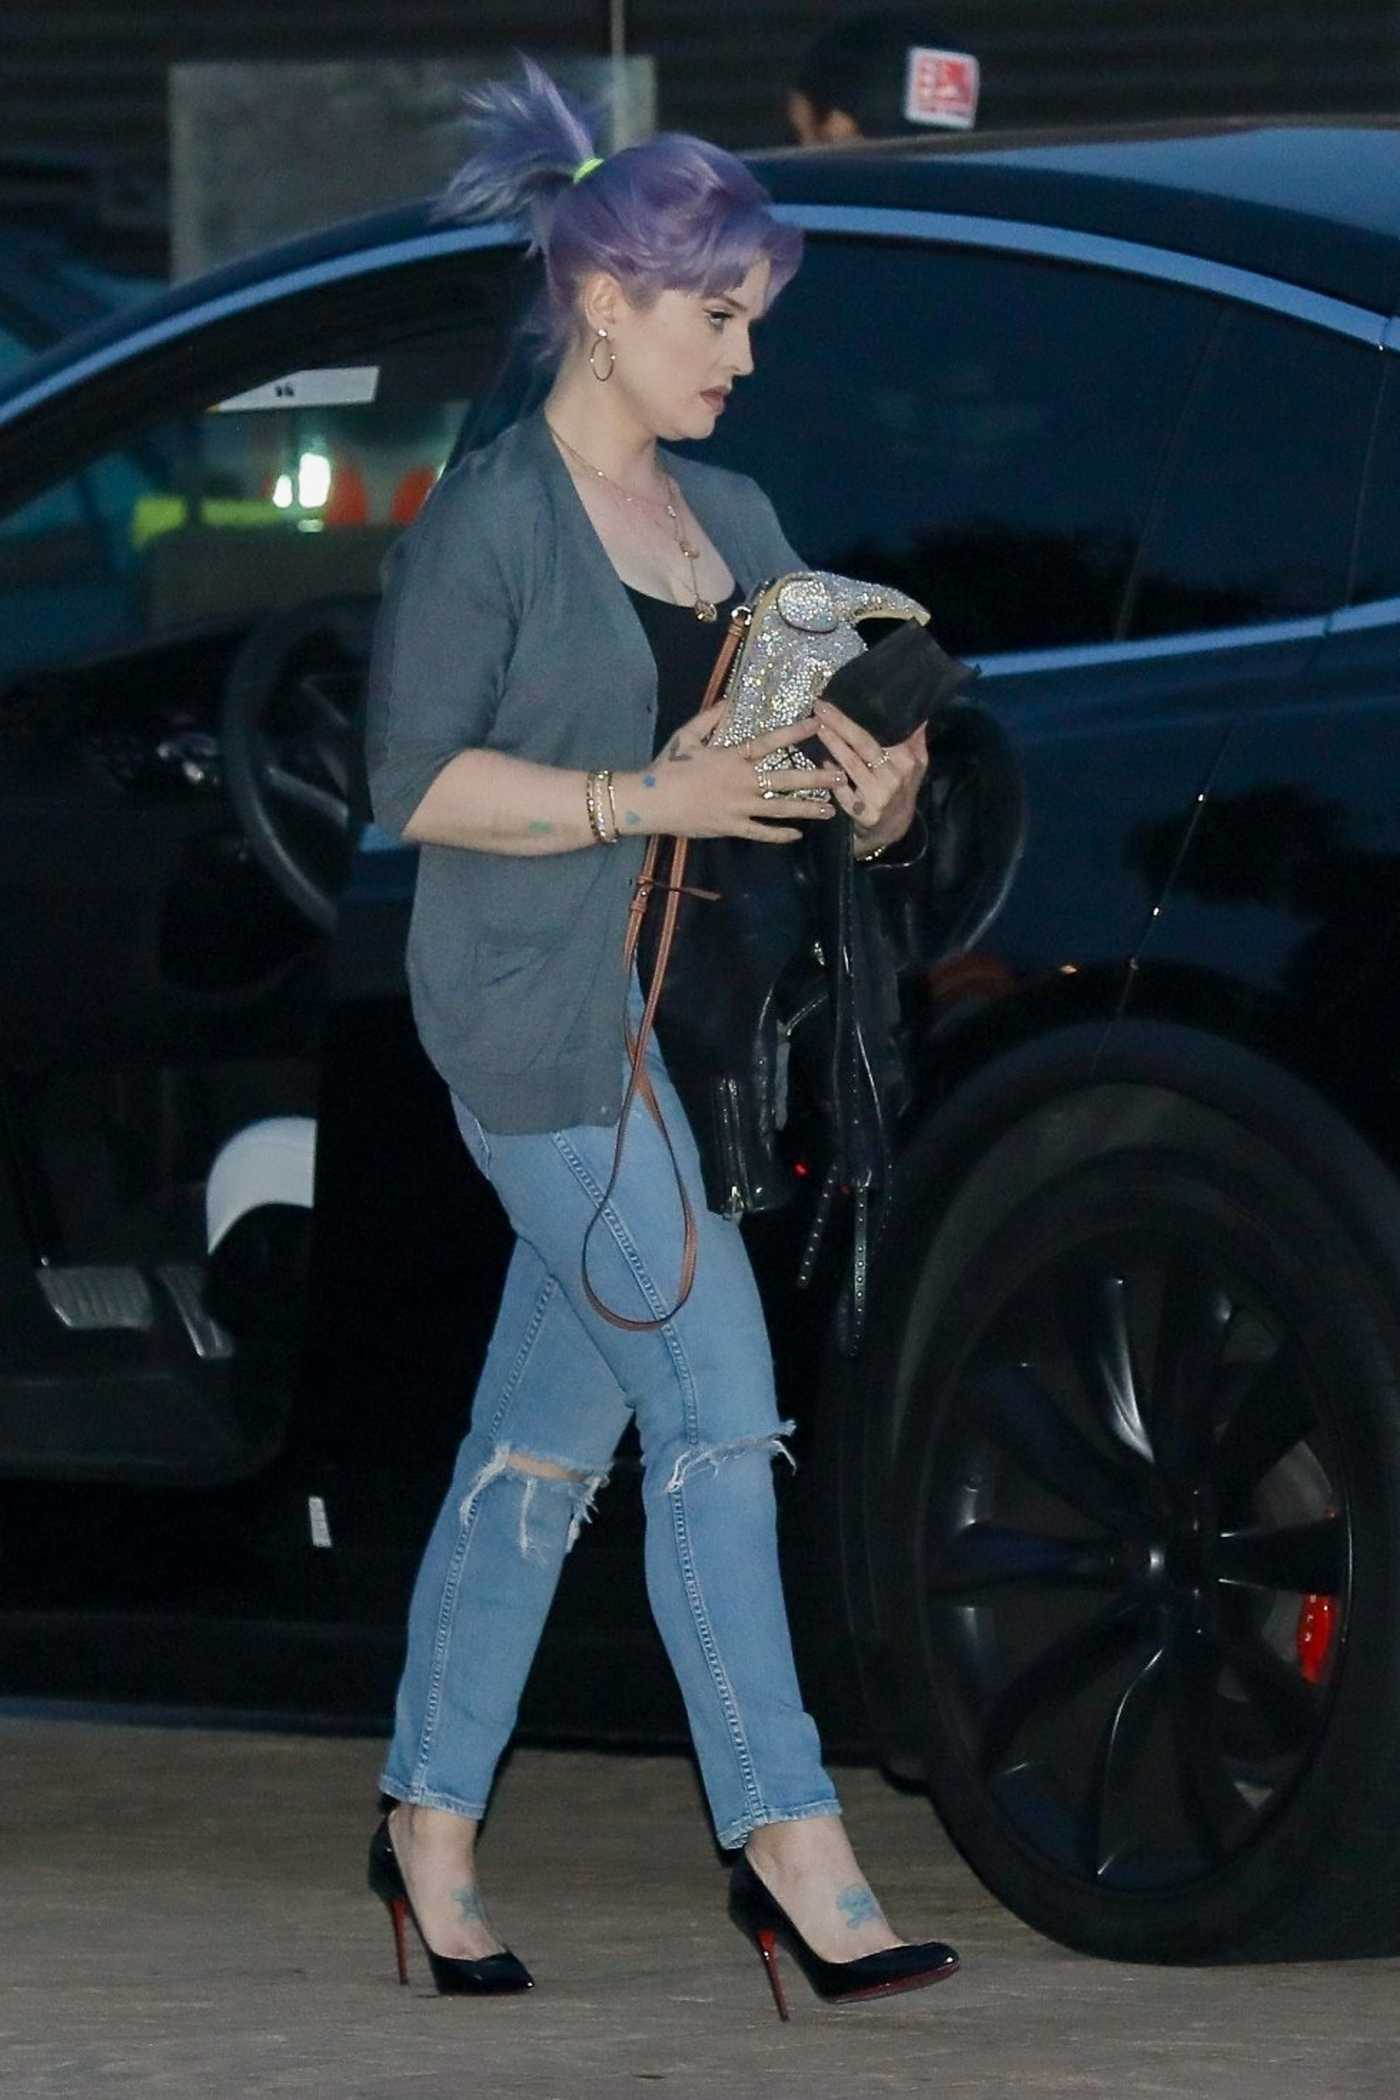 Kelly Osbourne in a Blue Ripped Jeans Arrives for Dinner at Nobu in Malibu 06/11/2020